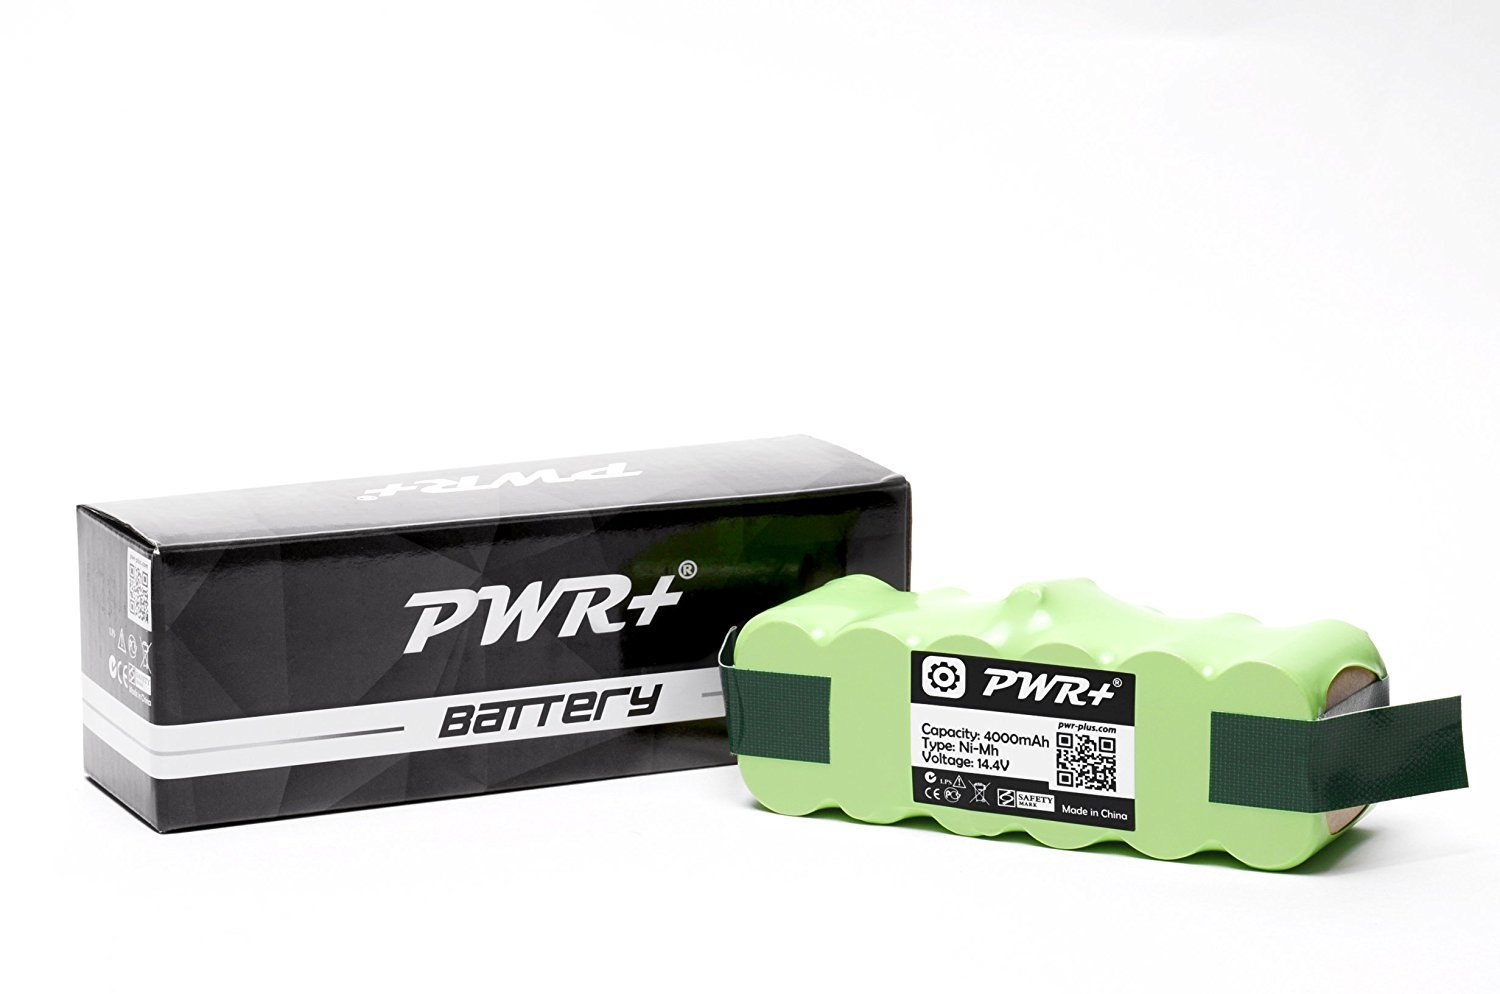 Pwr 4000mAh Replacement-Battery for Irobot-Roomba 600 700 800 900 Series 610 614 620 630 650 655; Professional 611 625 Pro 627 653 Pet 654 655 660 670 760 770 780 790 860 870 880 980 80501 Vacuum Cleaning Robot Backup Extended Capacity PWR+ 378-PWR59-8315